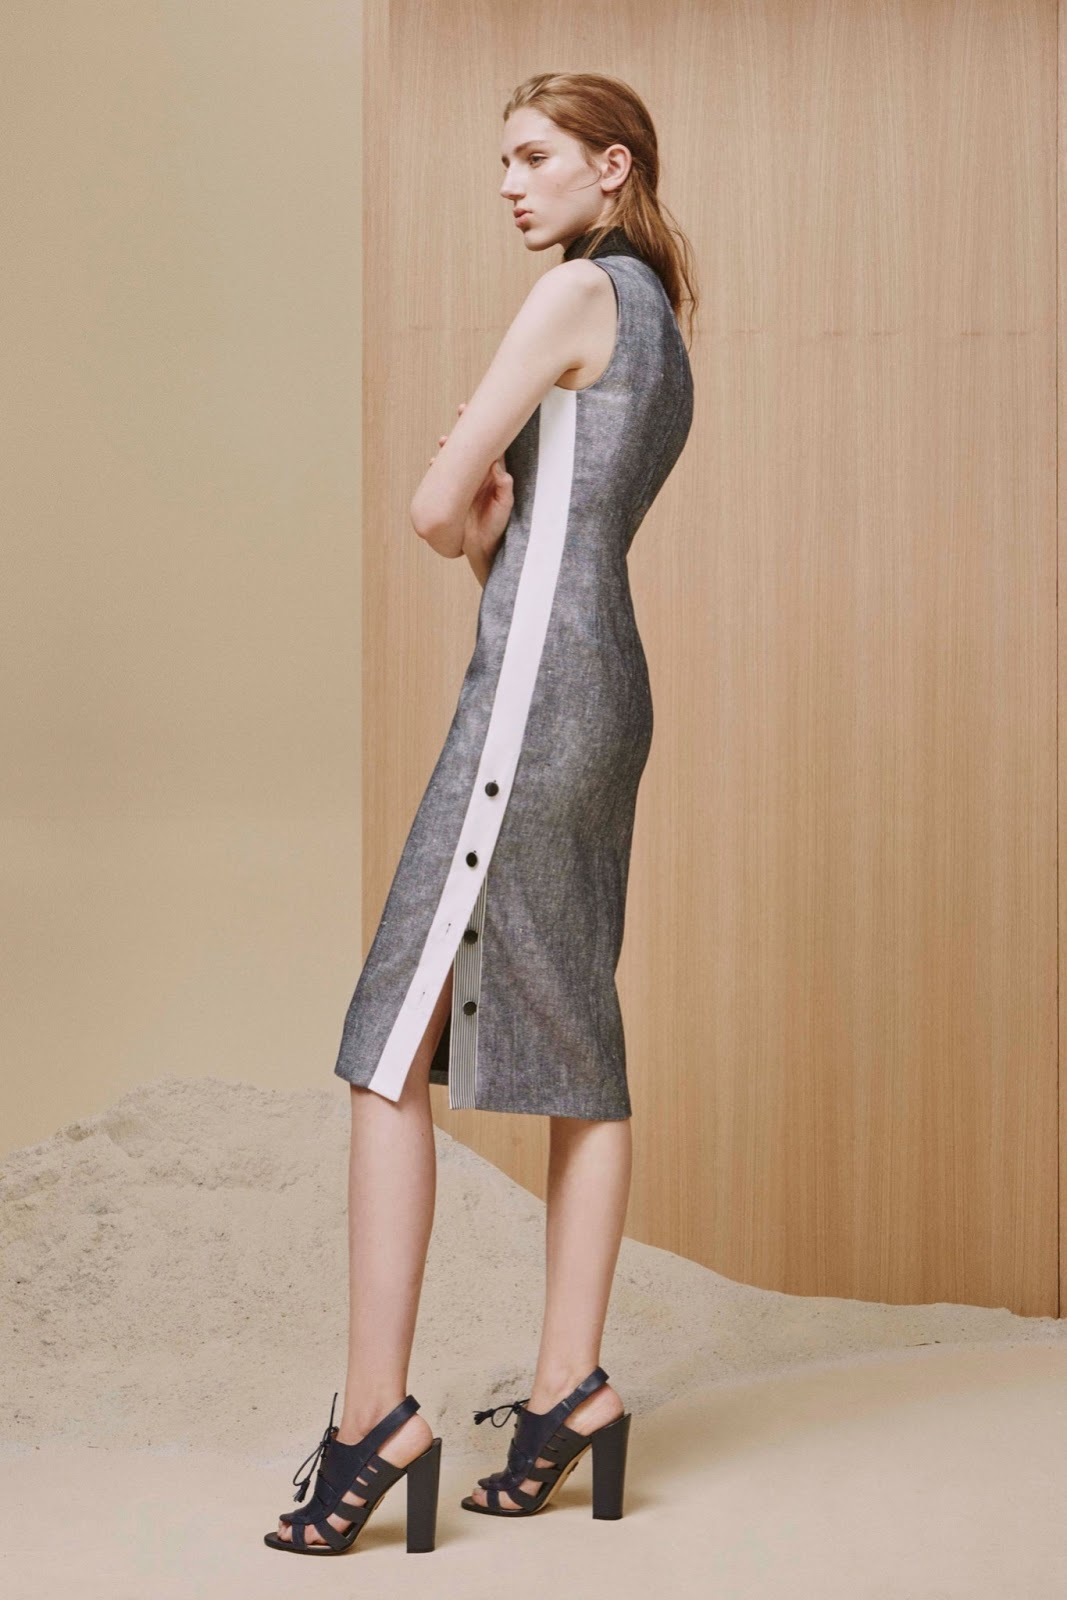 Adeam Resort 2016 / best looks of resort 2016 inspired by organic and natural fabrics and living. Via fashioned by love / british fashion blog